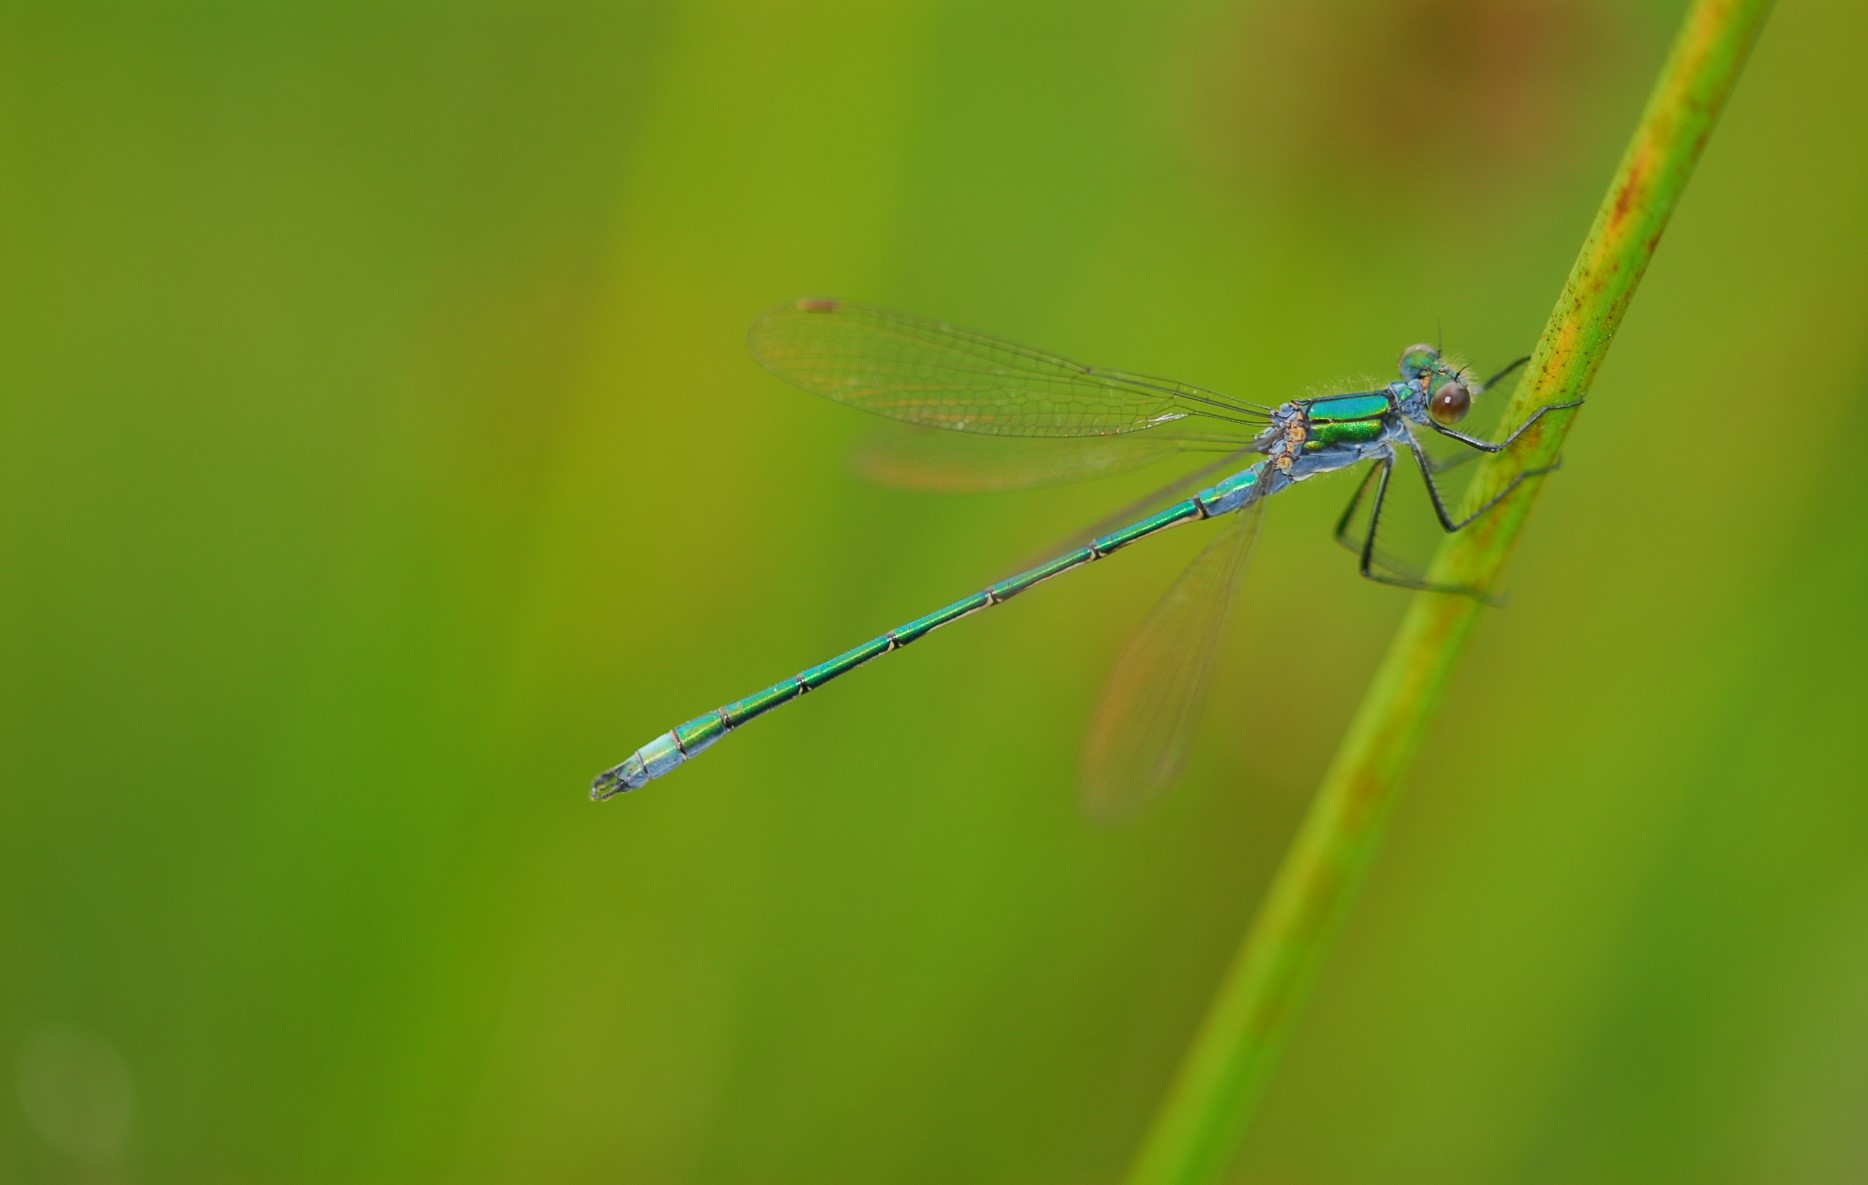 Picture of blue damsel fly holding onto a green stem